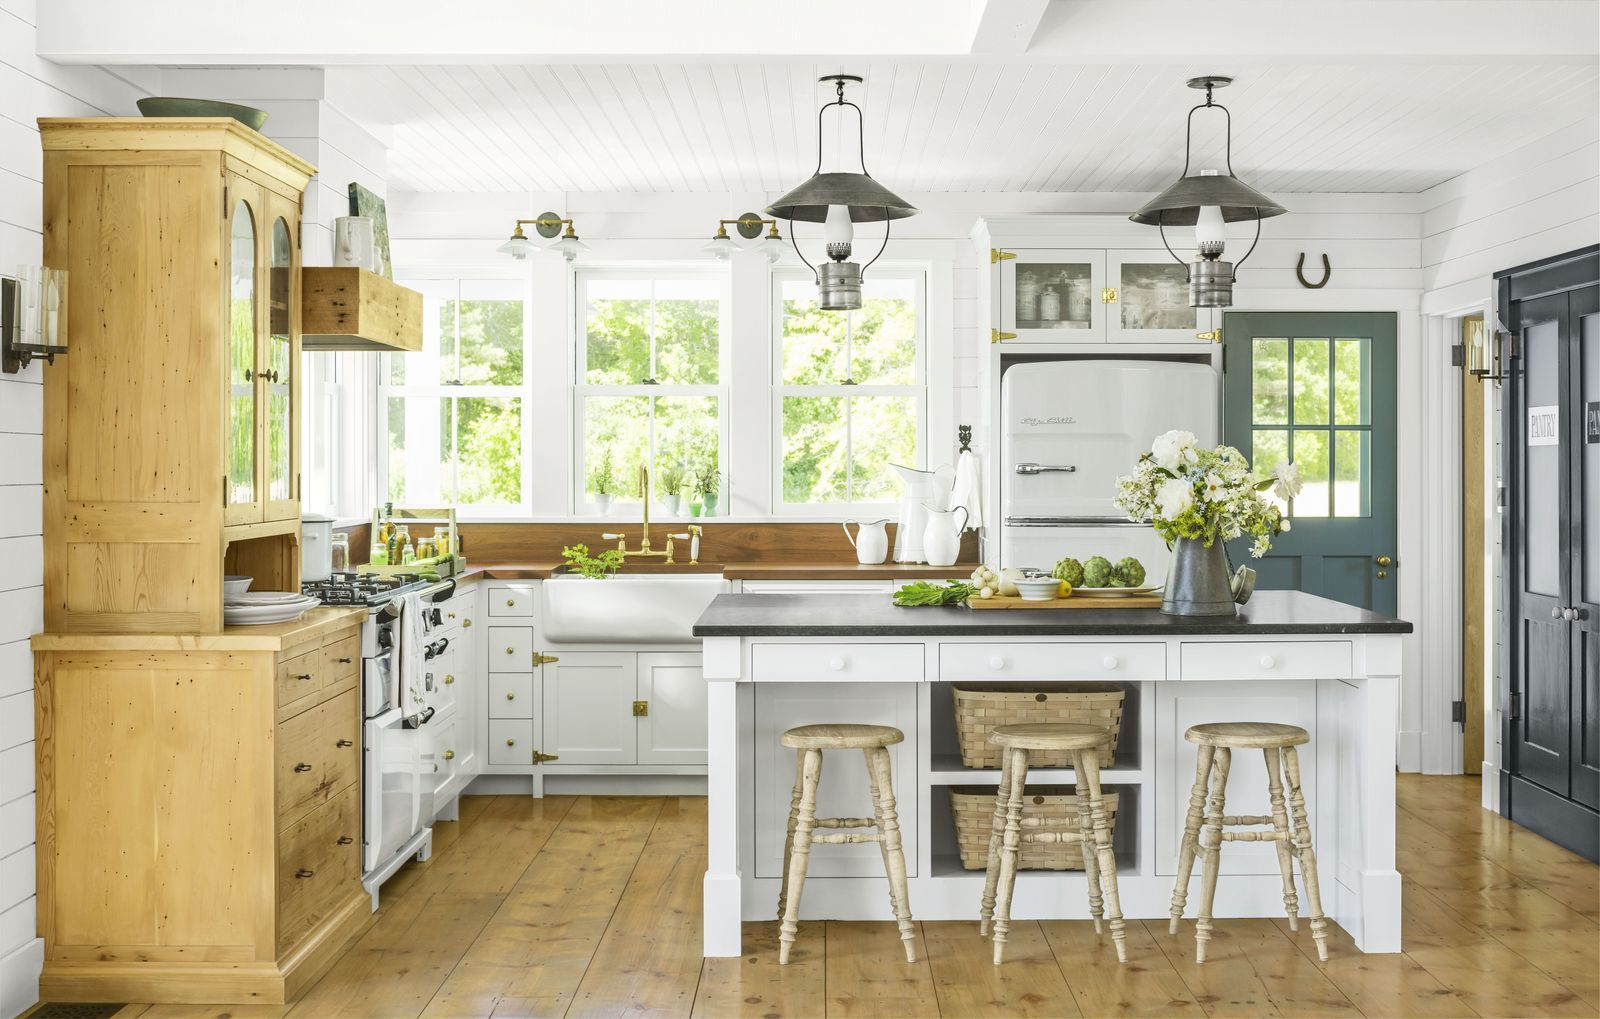 32 kitchen trends for 2020 that we predict will be everywhere country kitchen designs on kitchen interior trend 2020 id=24595